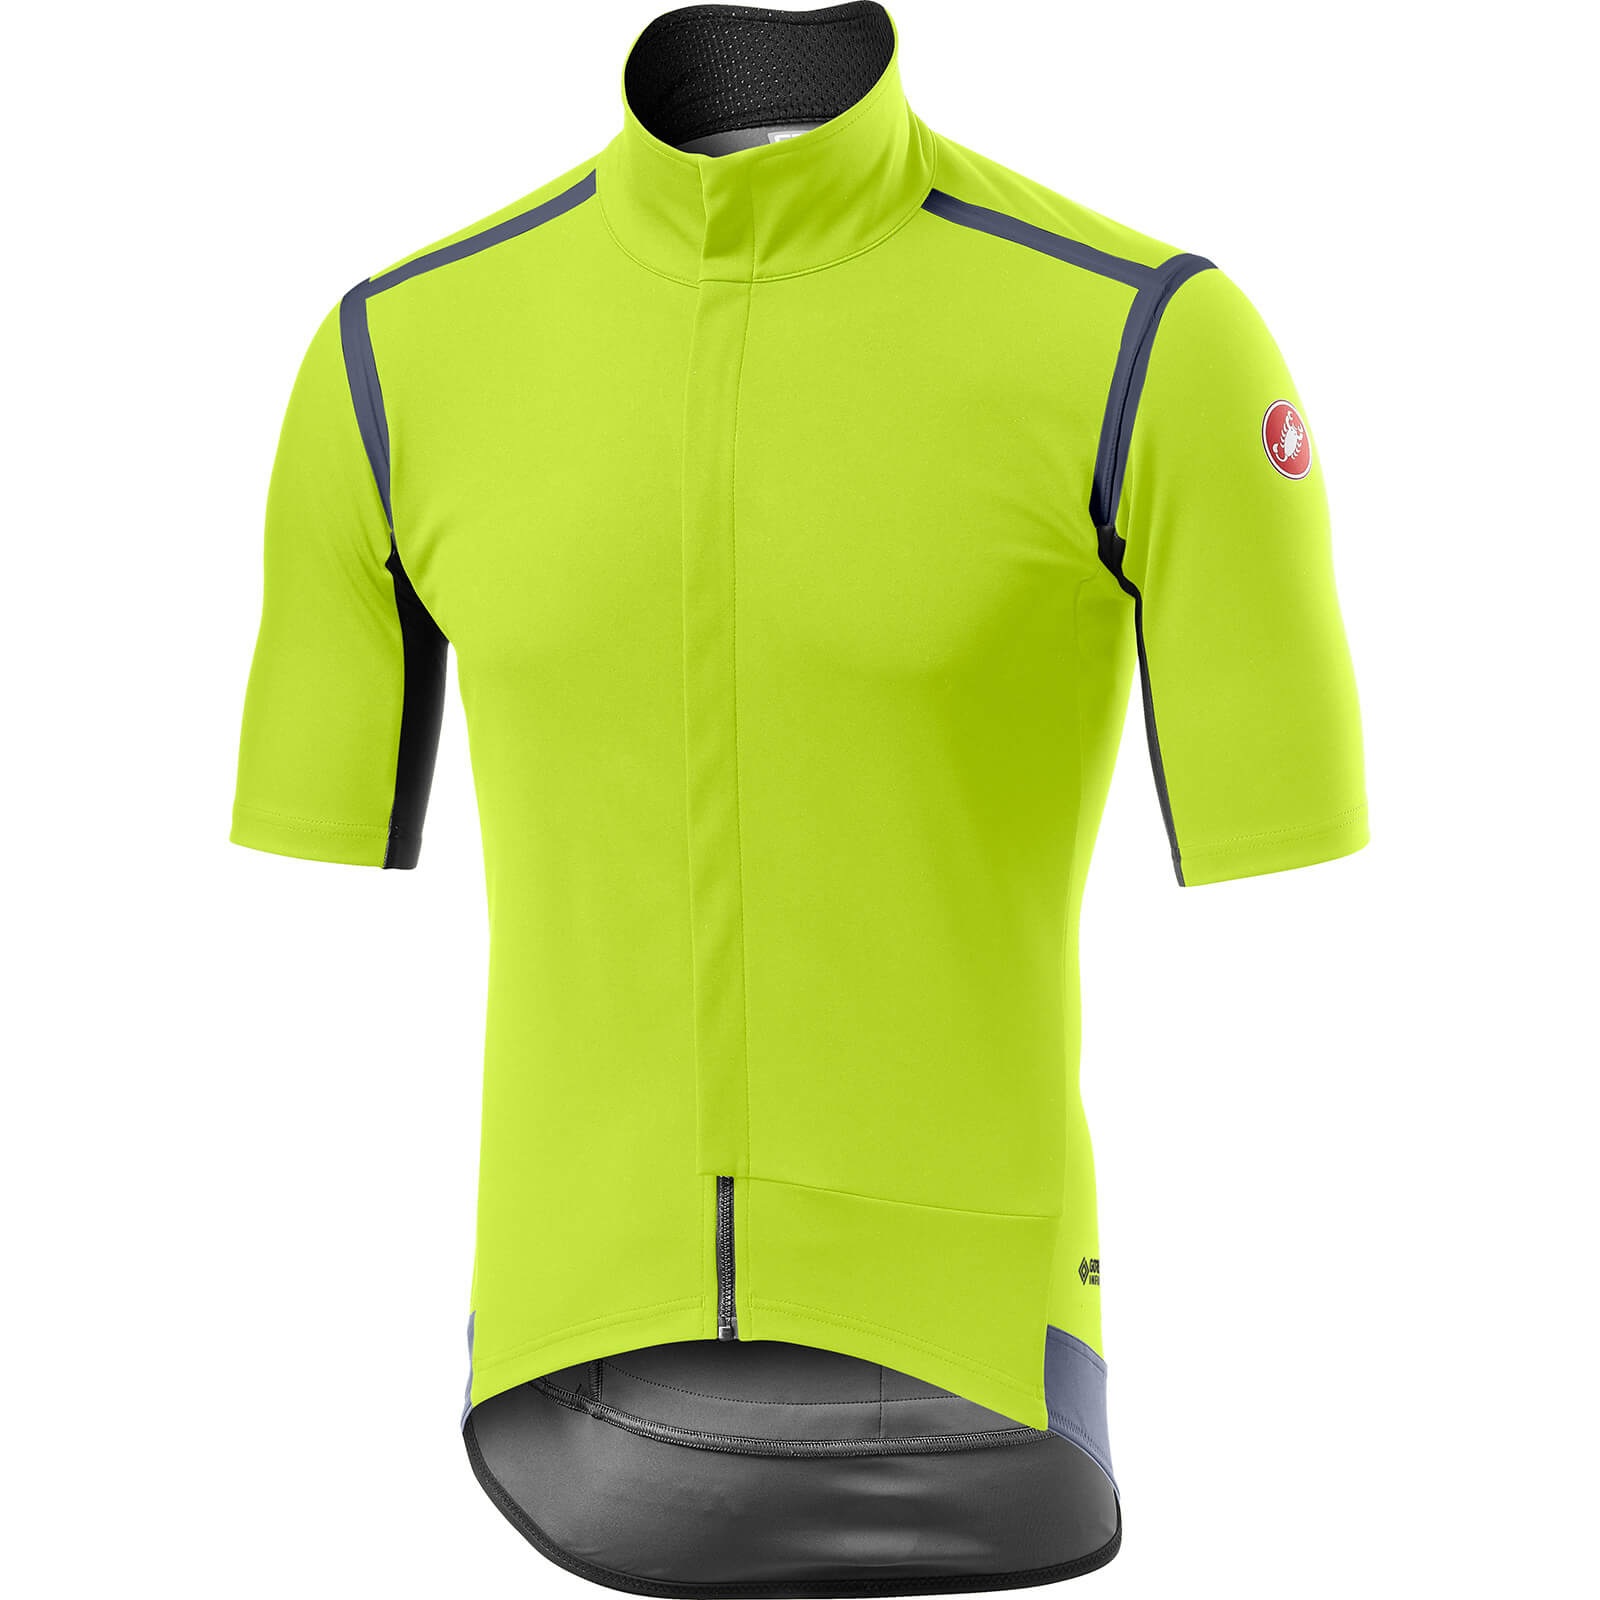 Image of Castelli Gabba RoS Jersey - M - Yellow Fluo